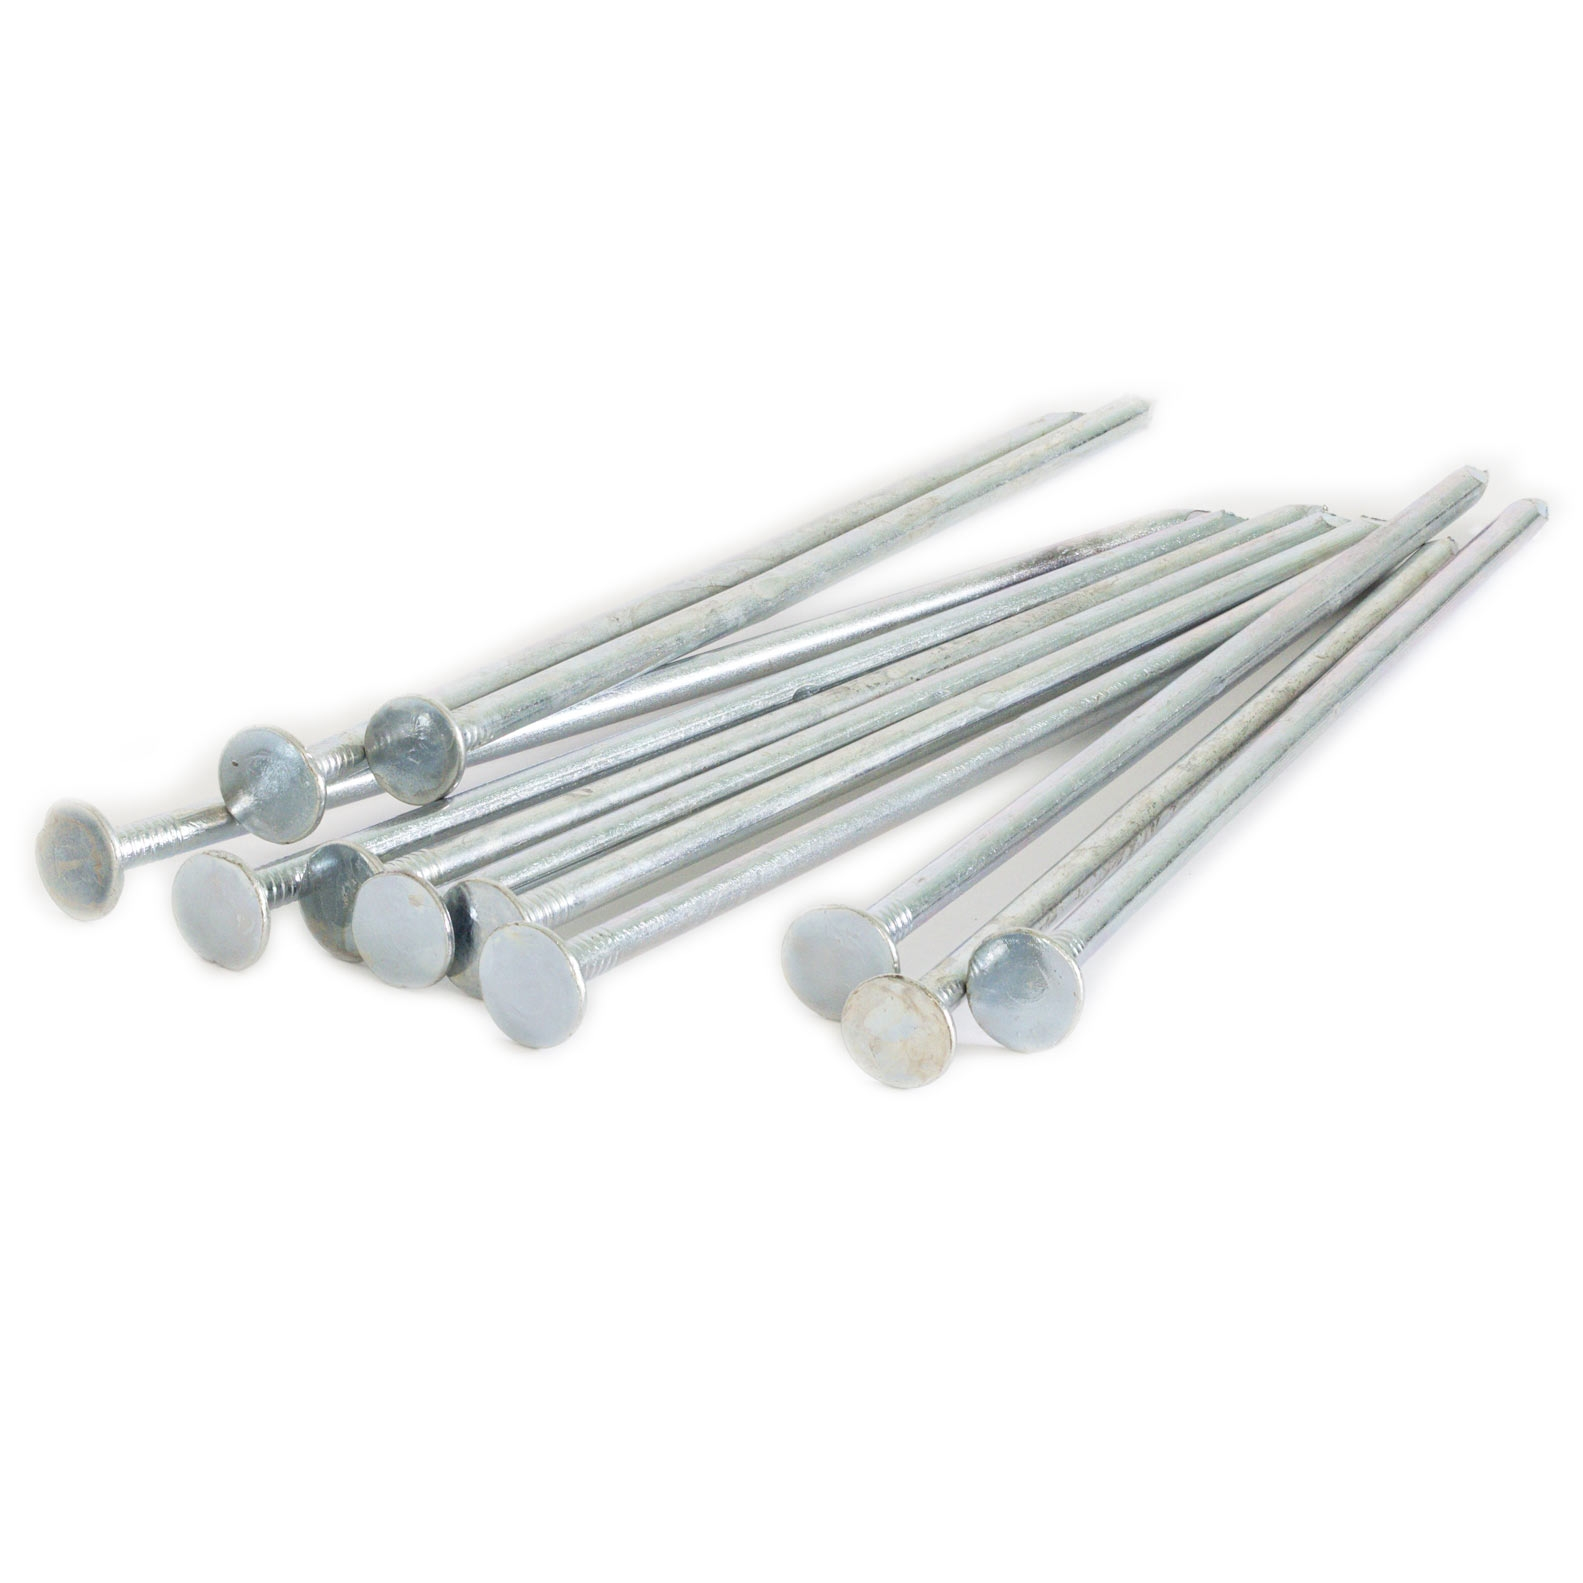 Galvanized spikes nails for synthetic turf installation